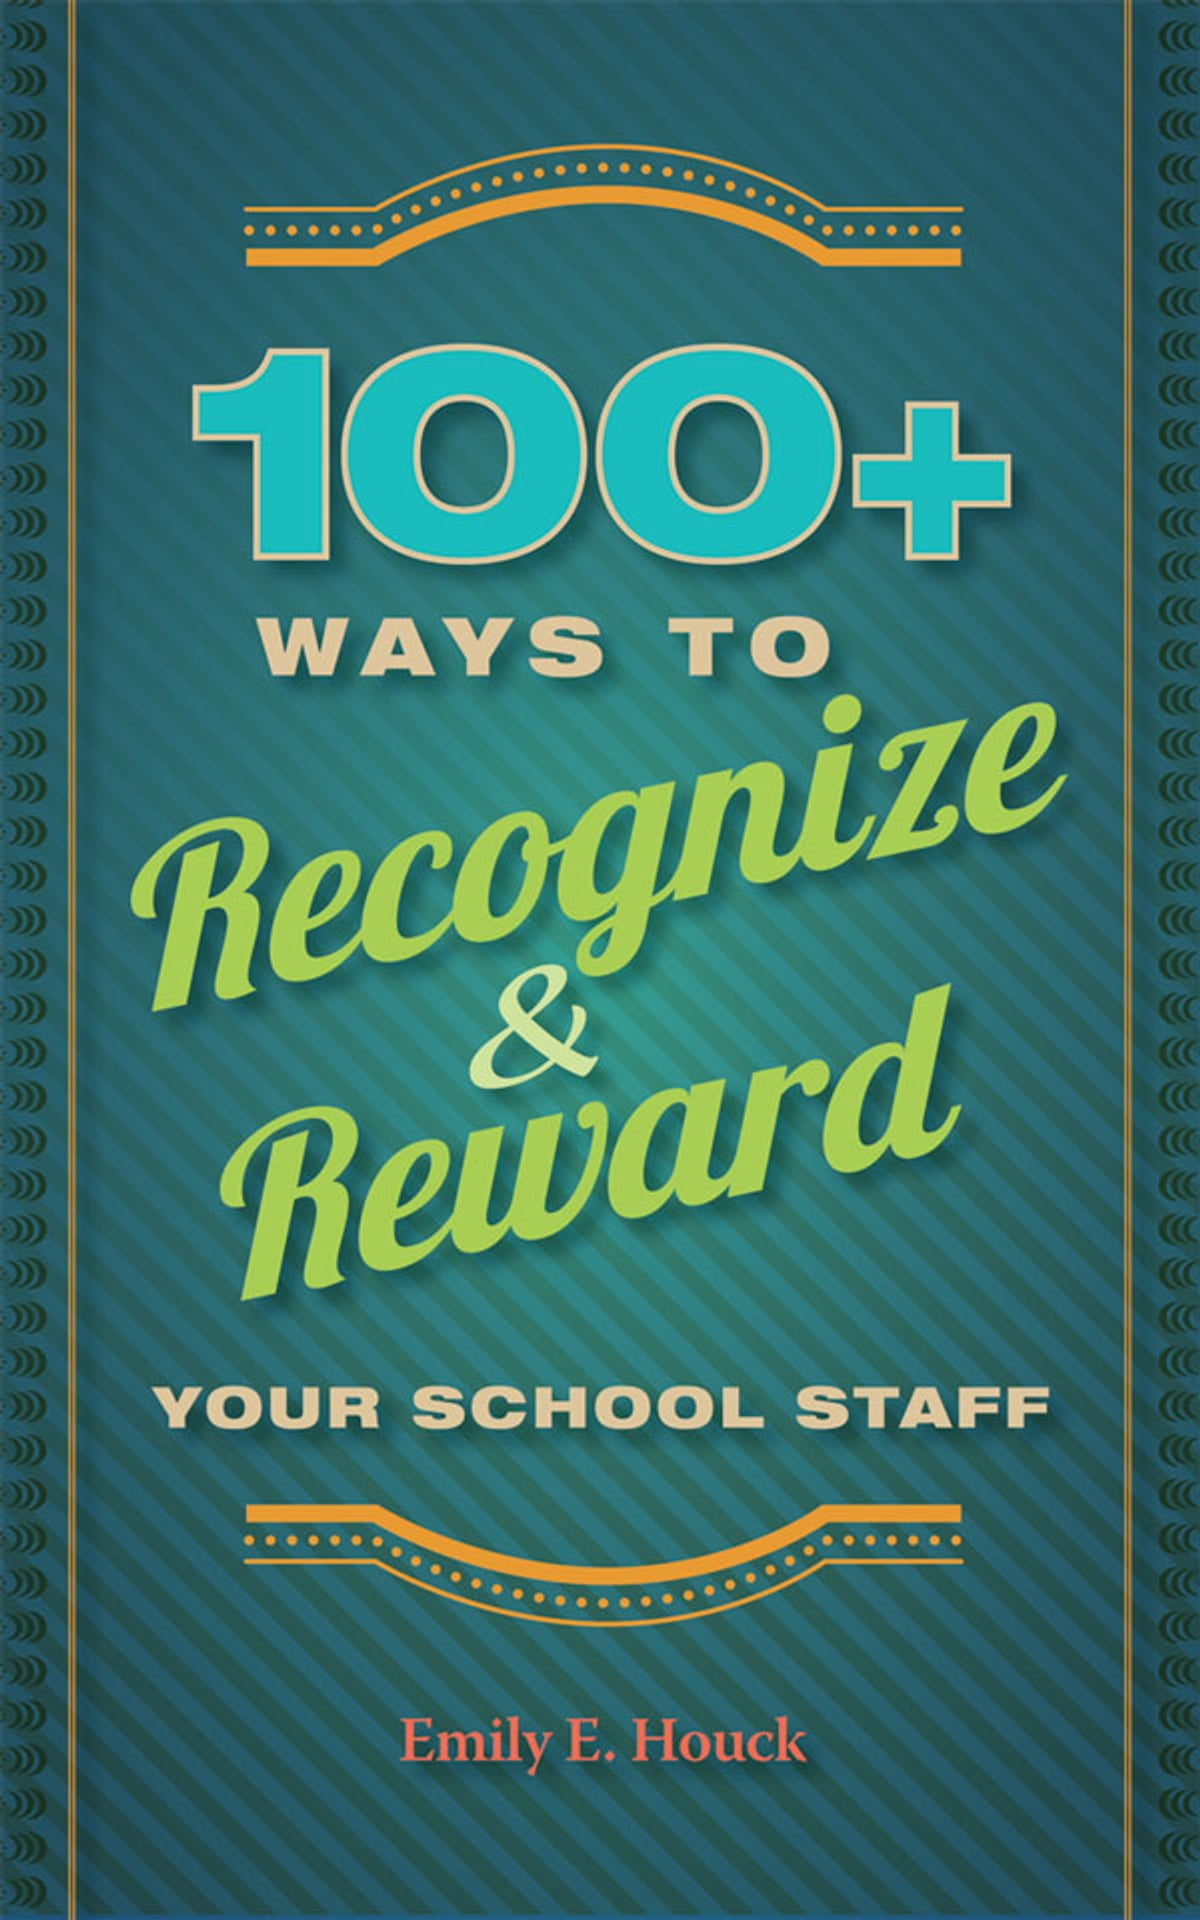 100+ Ways to Recognize and Reward Your School Staff eBook by Emily E. Houck  - 9781416615262 | Rakuten Kobo